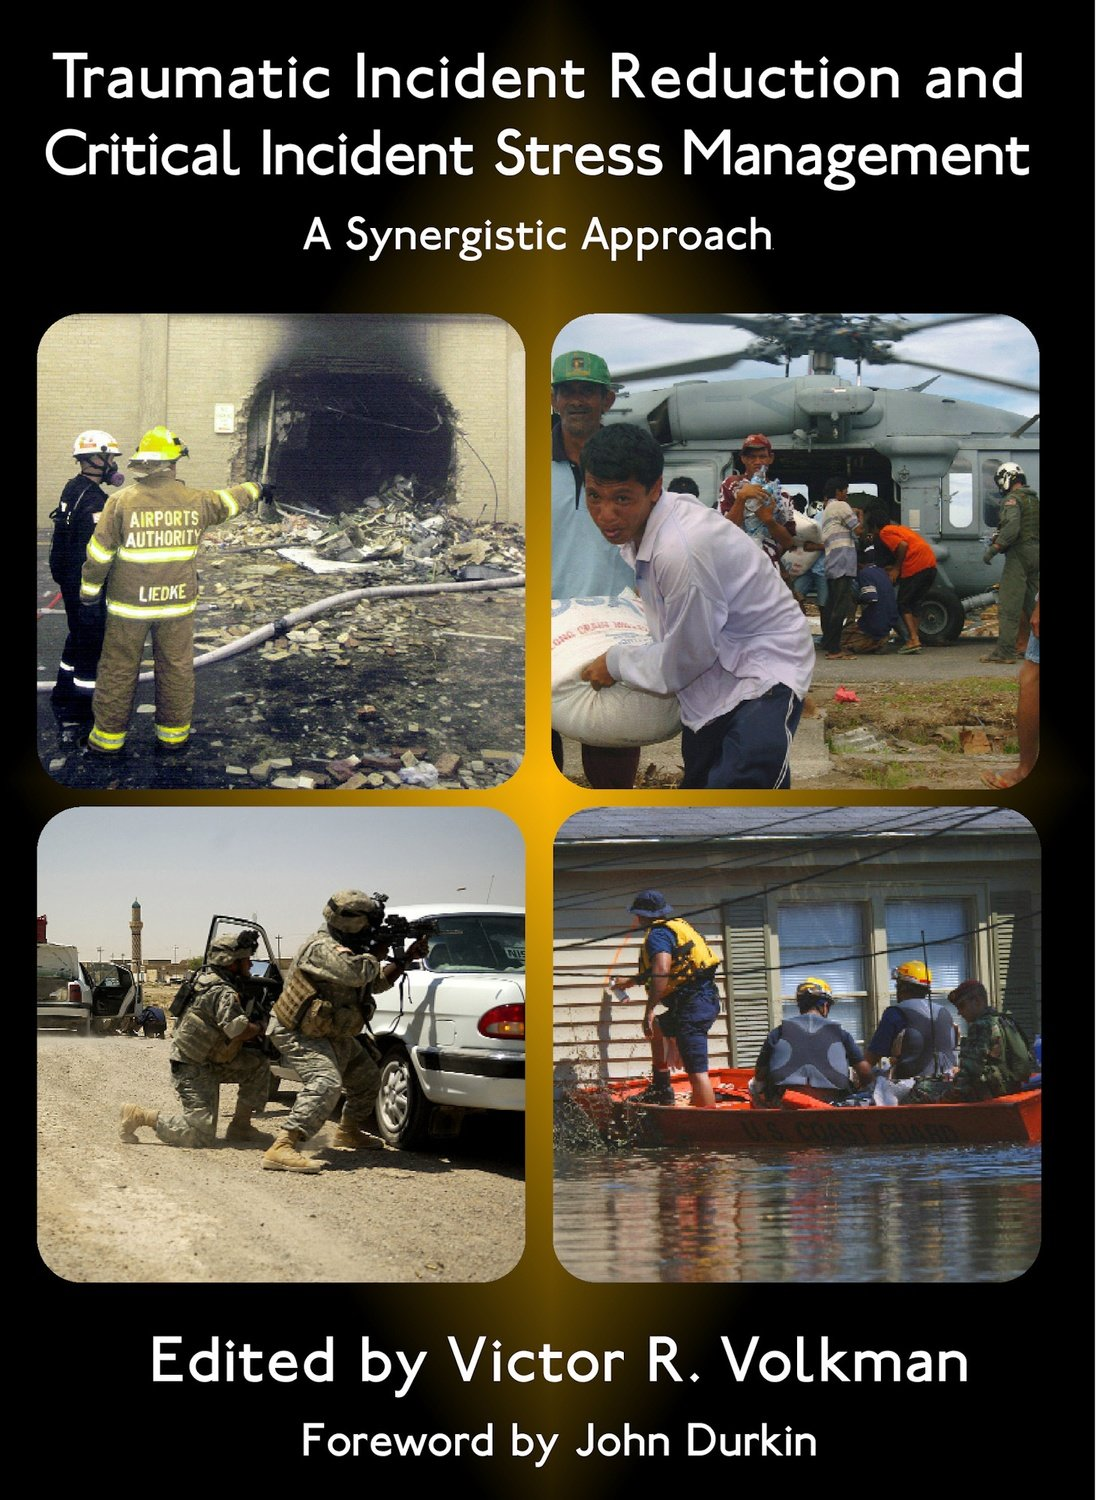 Traumatic Incident Reduction and Critical Incident Stress Management: A Synergistic Approach